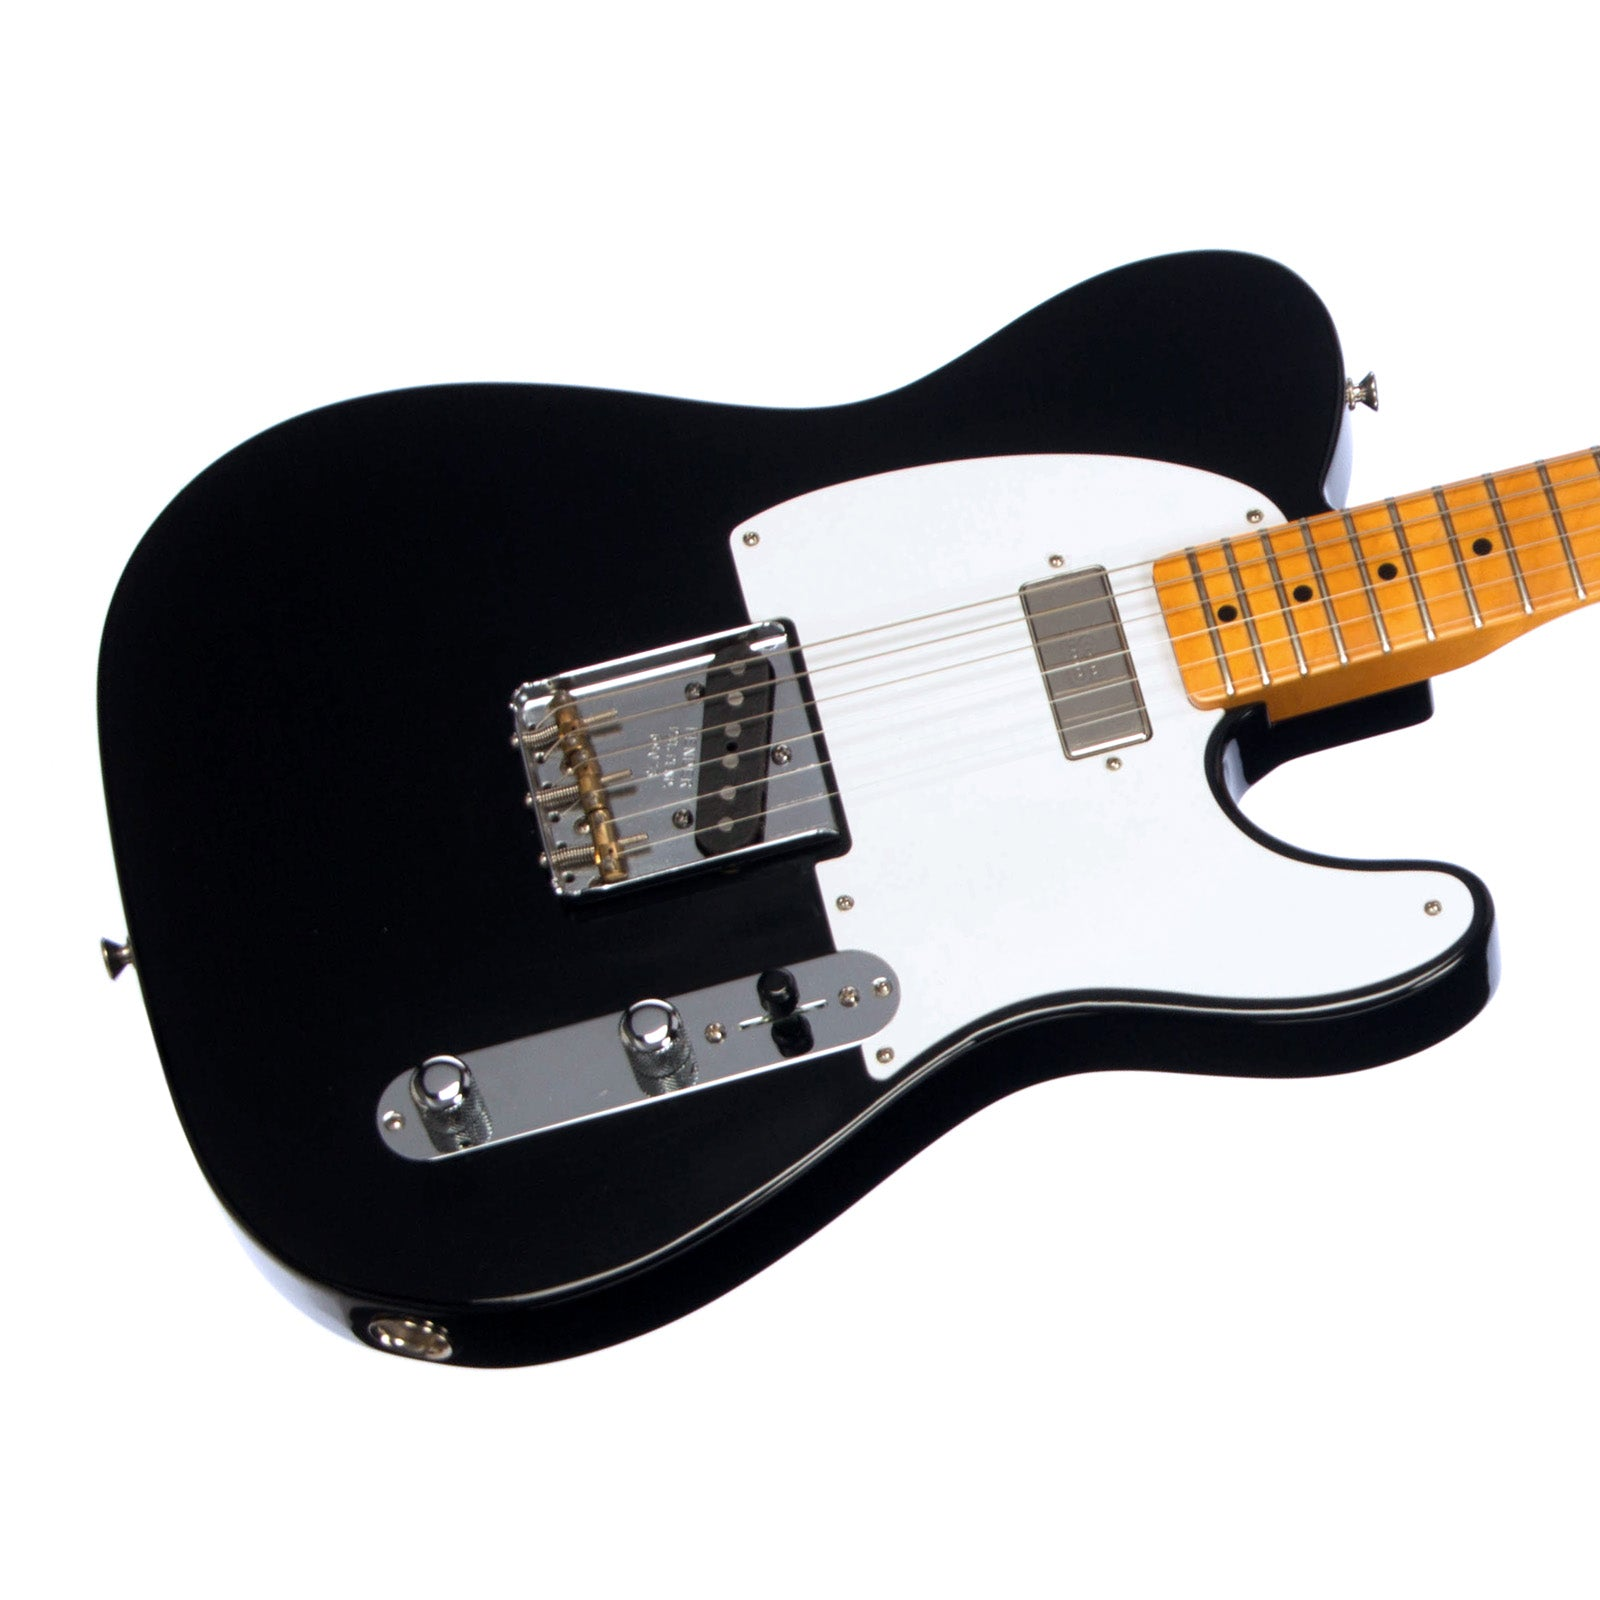 Fender 52 Hot Rod Telecaster Wiring Diagram Private Sharing About Vintage Specs Best 2018 Rh Cutewheat Site